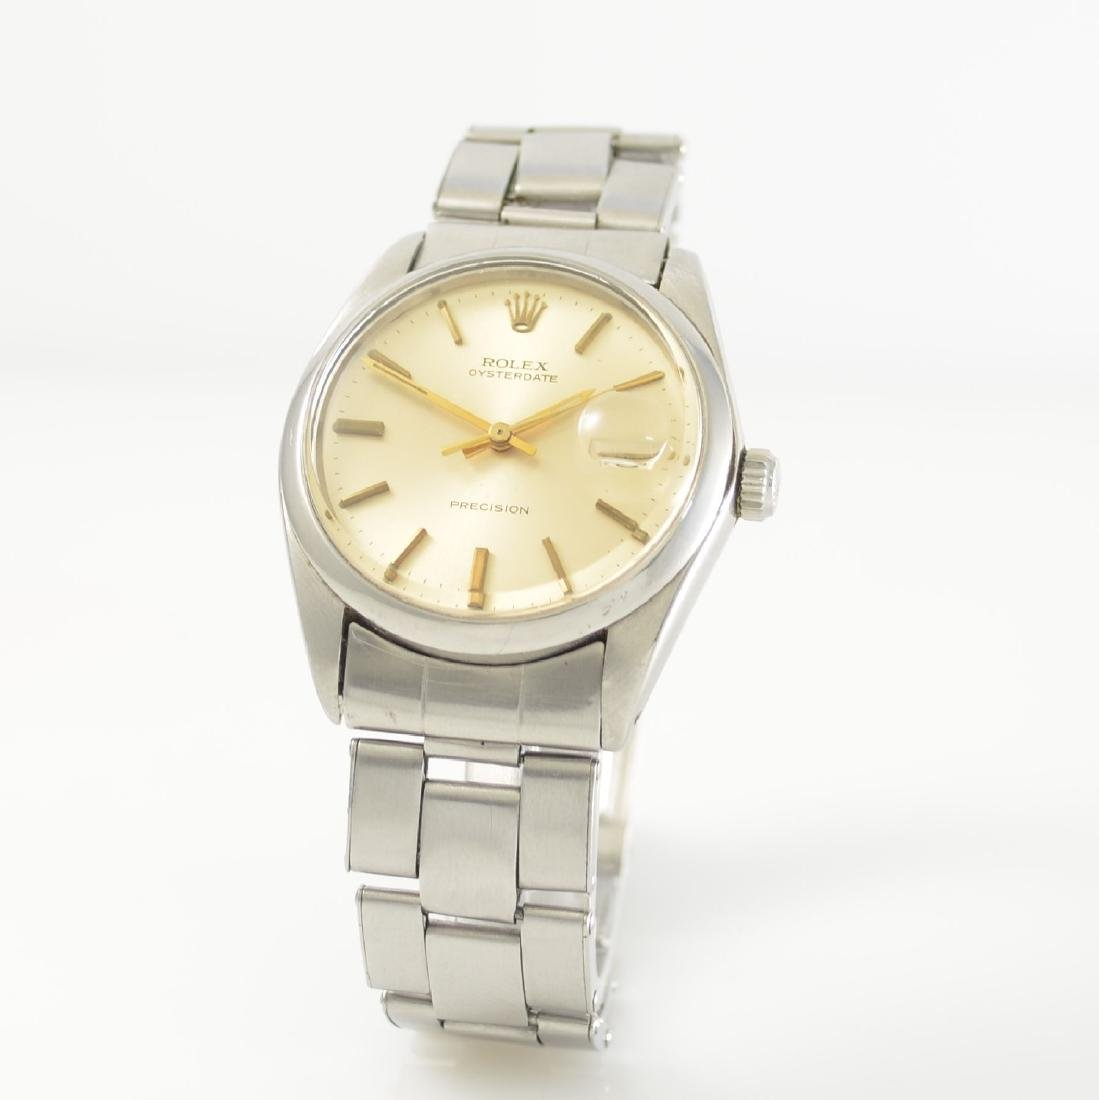 ROLEX Precision reference 6694 gents wristwatch - 4